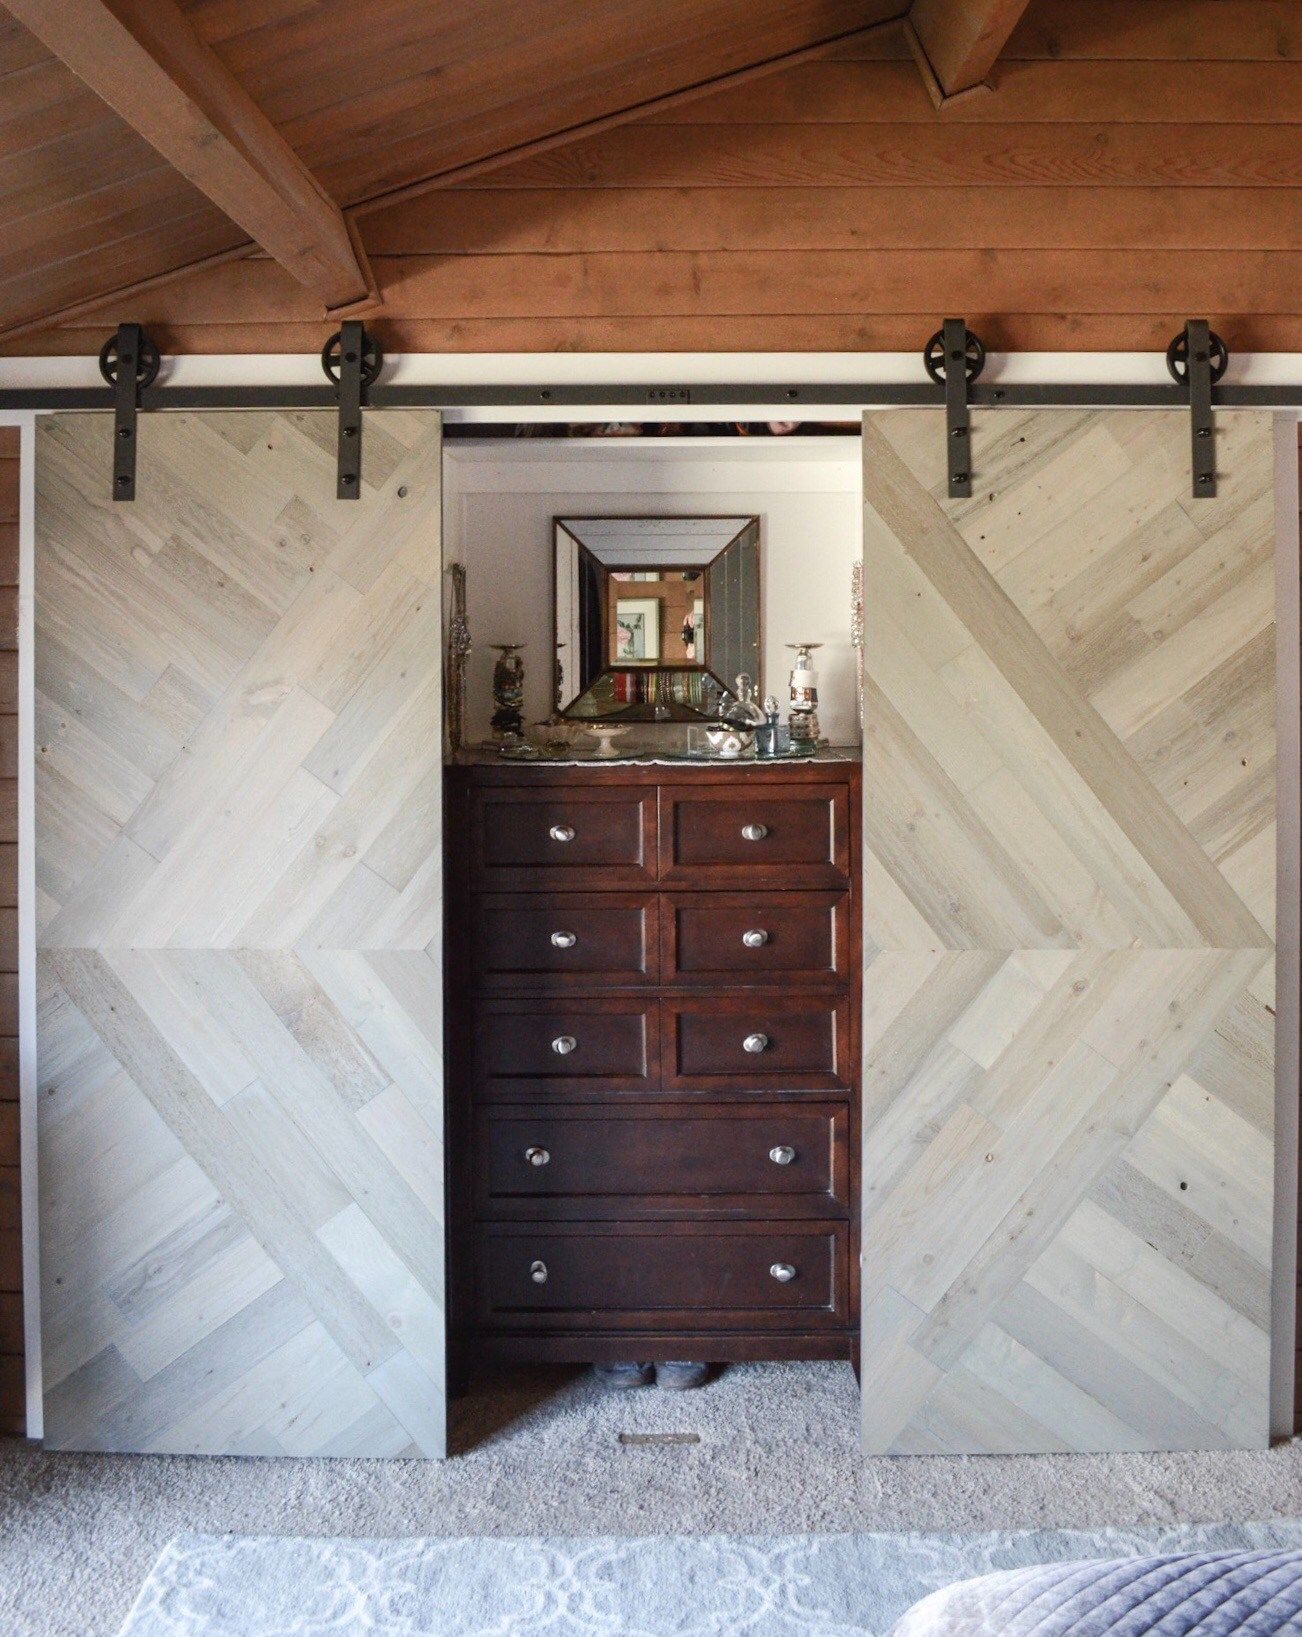 Driftwood Timberchic On Barn Door Photo Credit Nonis House